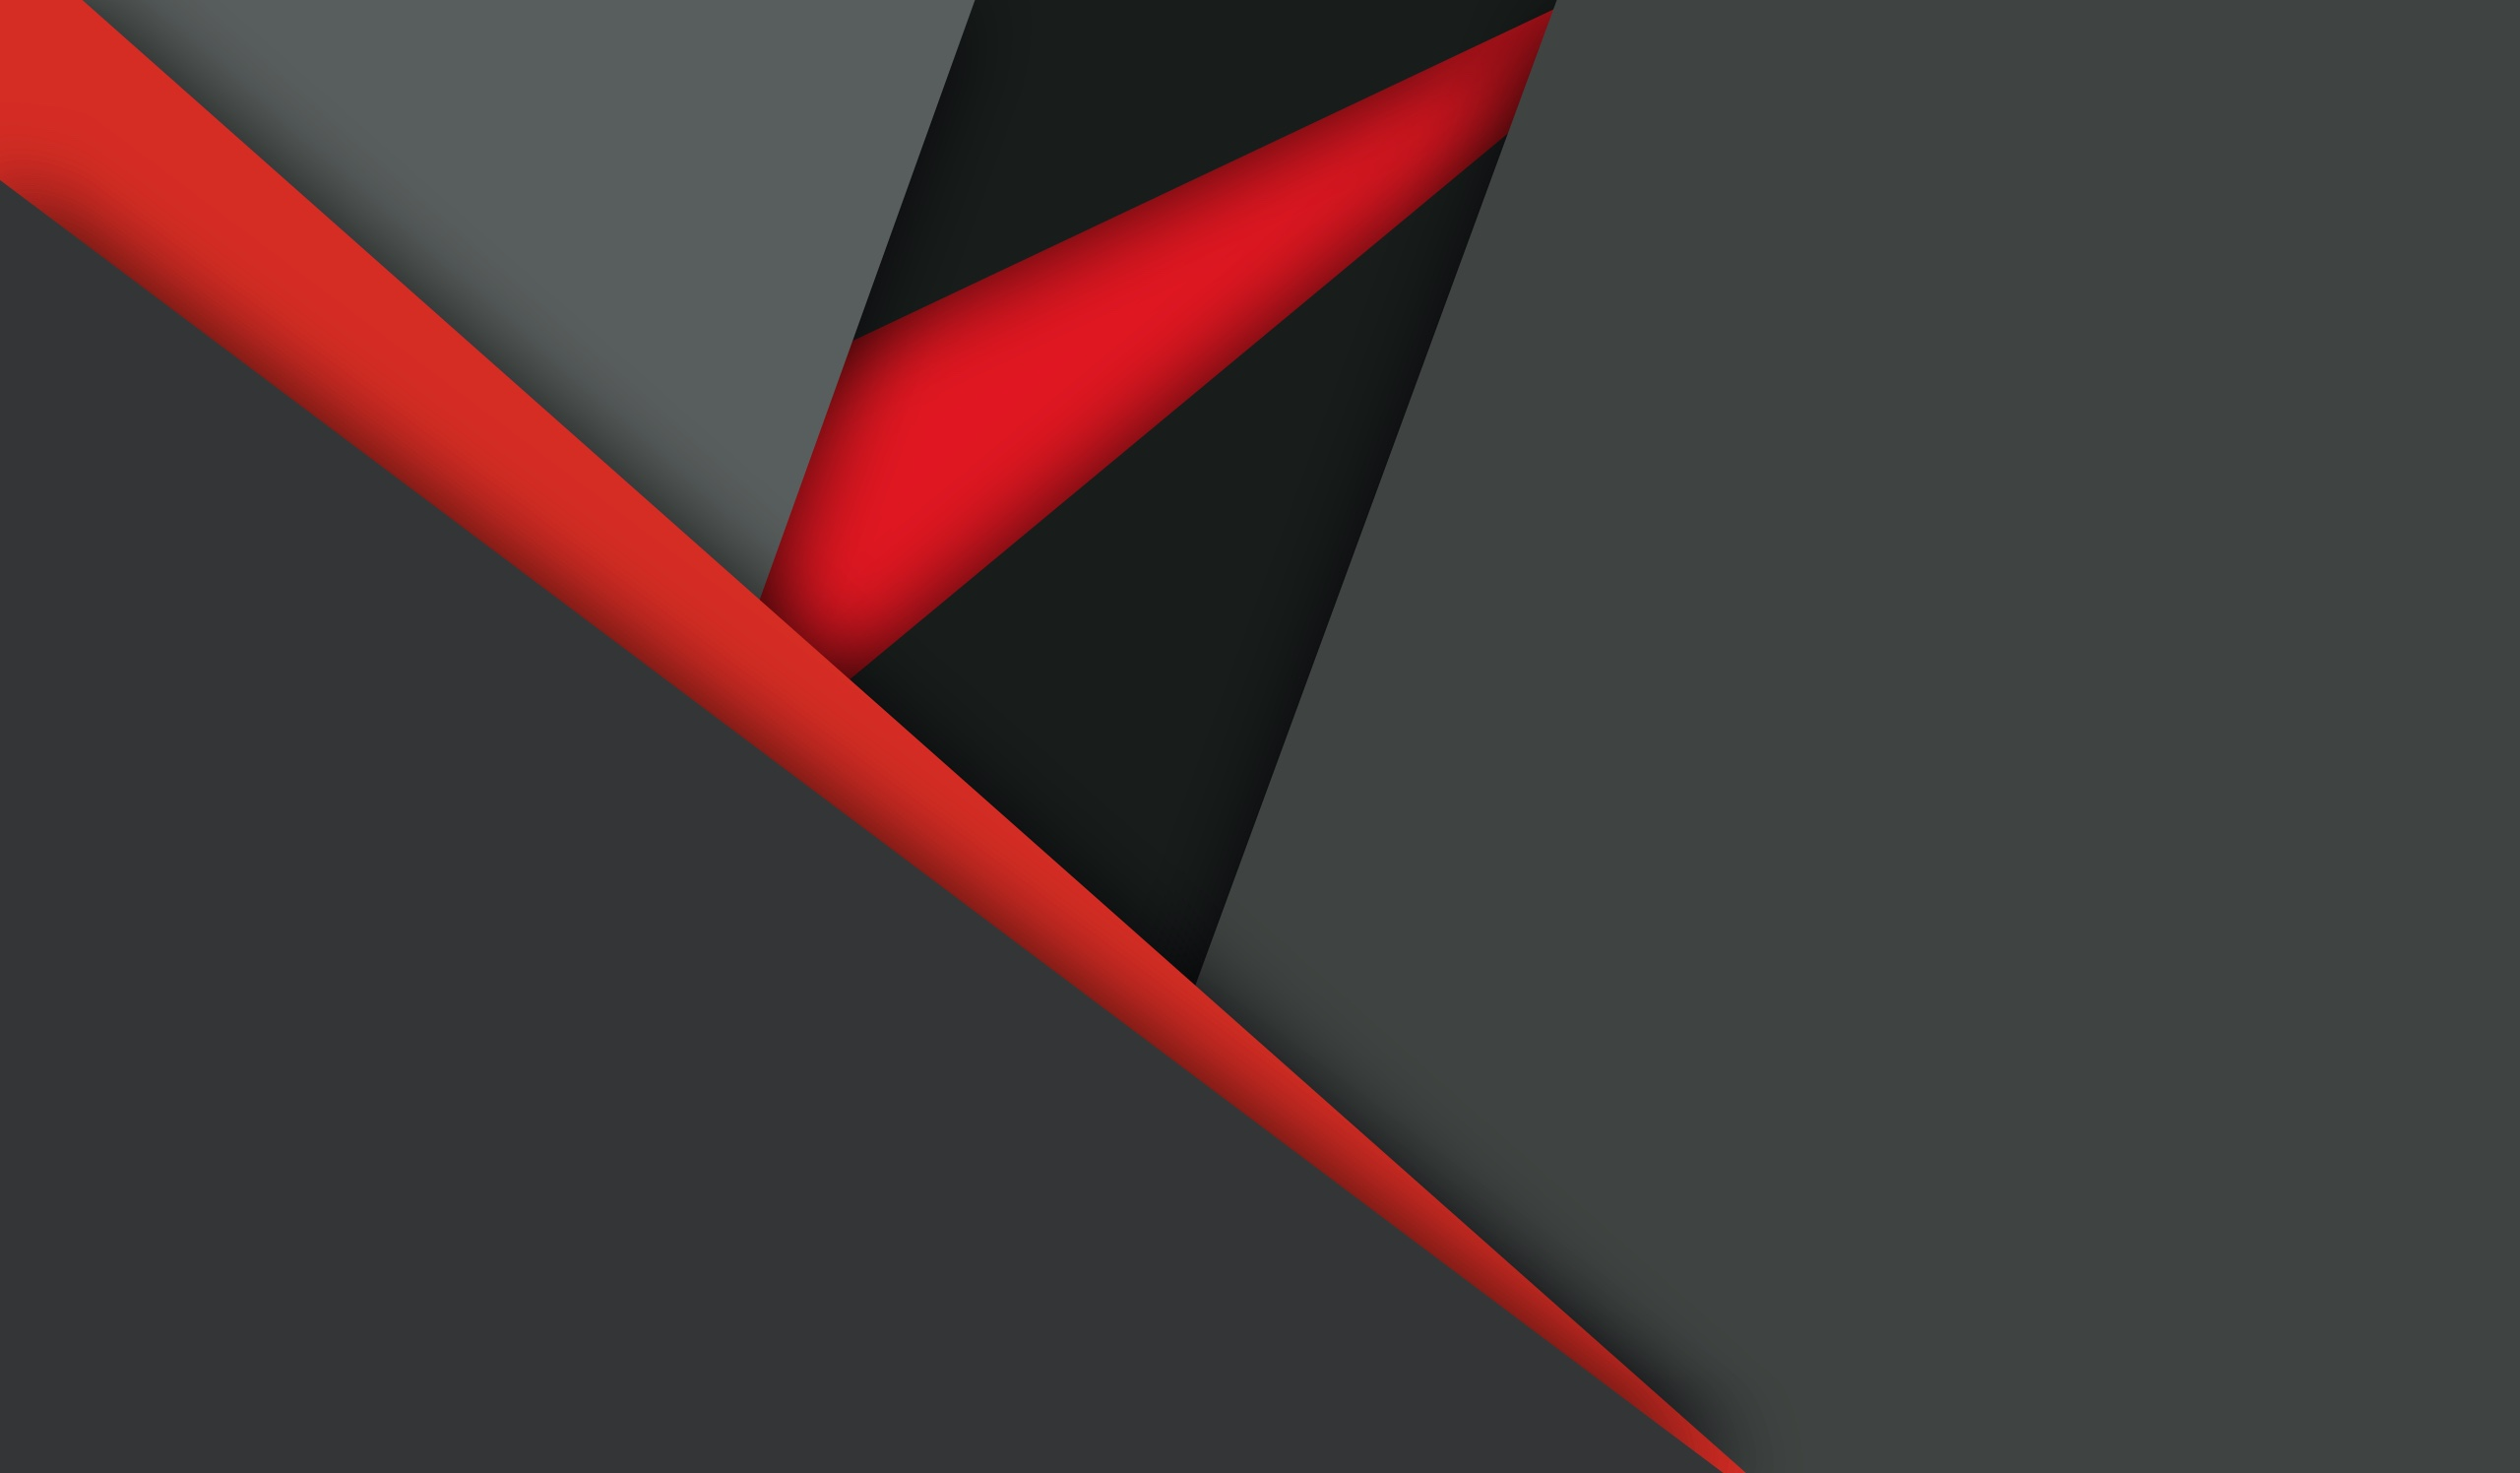 Material design dark red black hd abstract 4k wallpapers for Material design wallpaper 4k